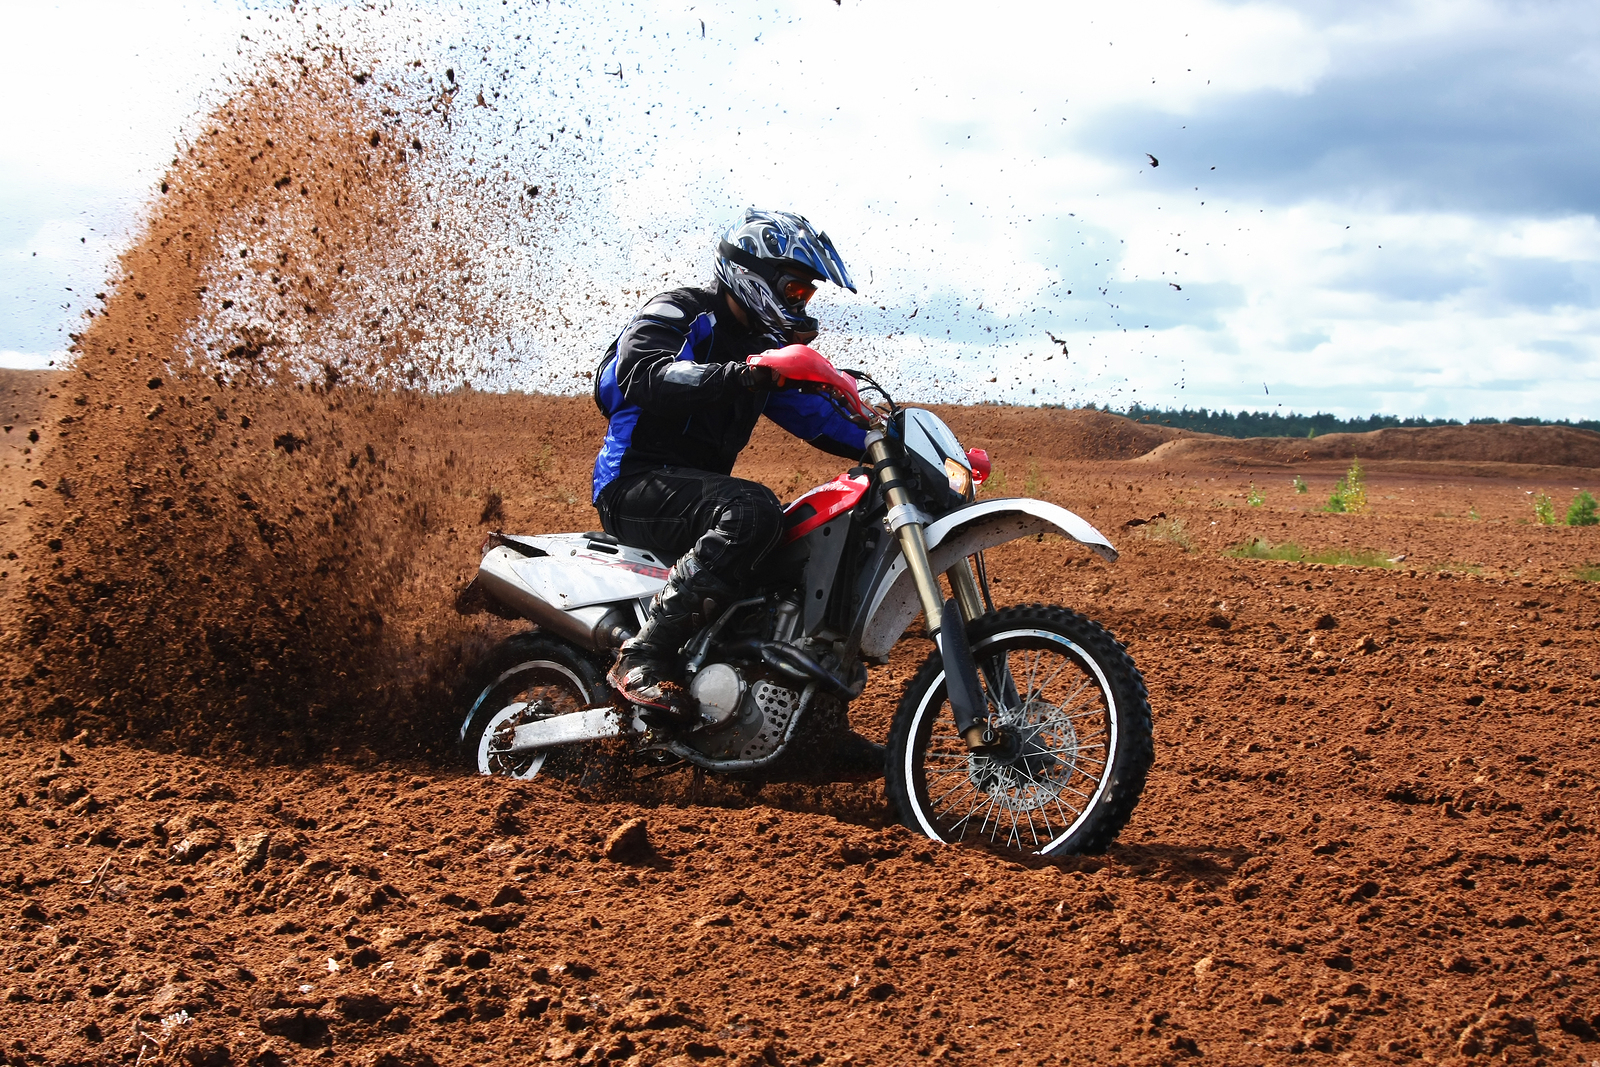 dirt bikes reviews: 2 stroke vs 4 stroke